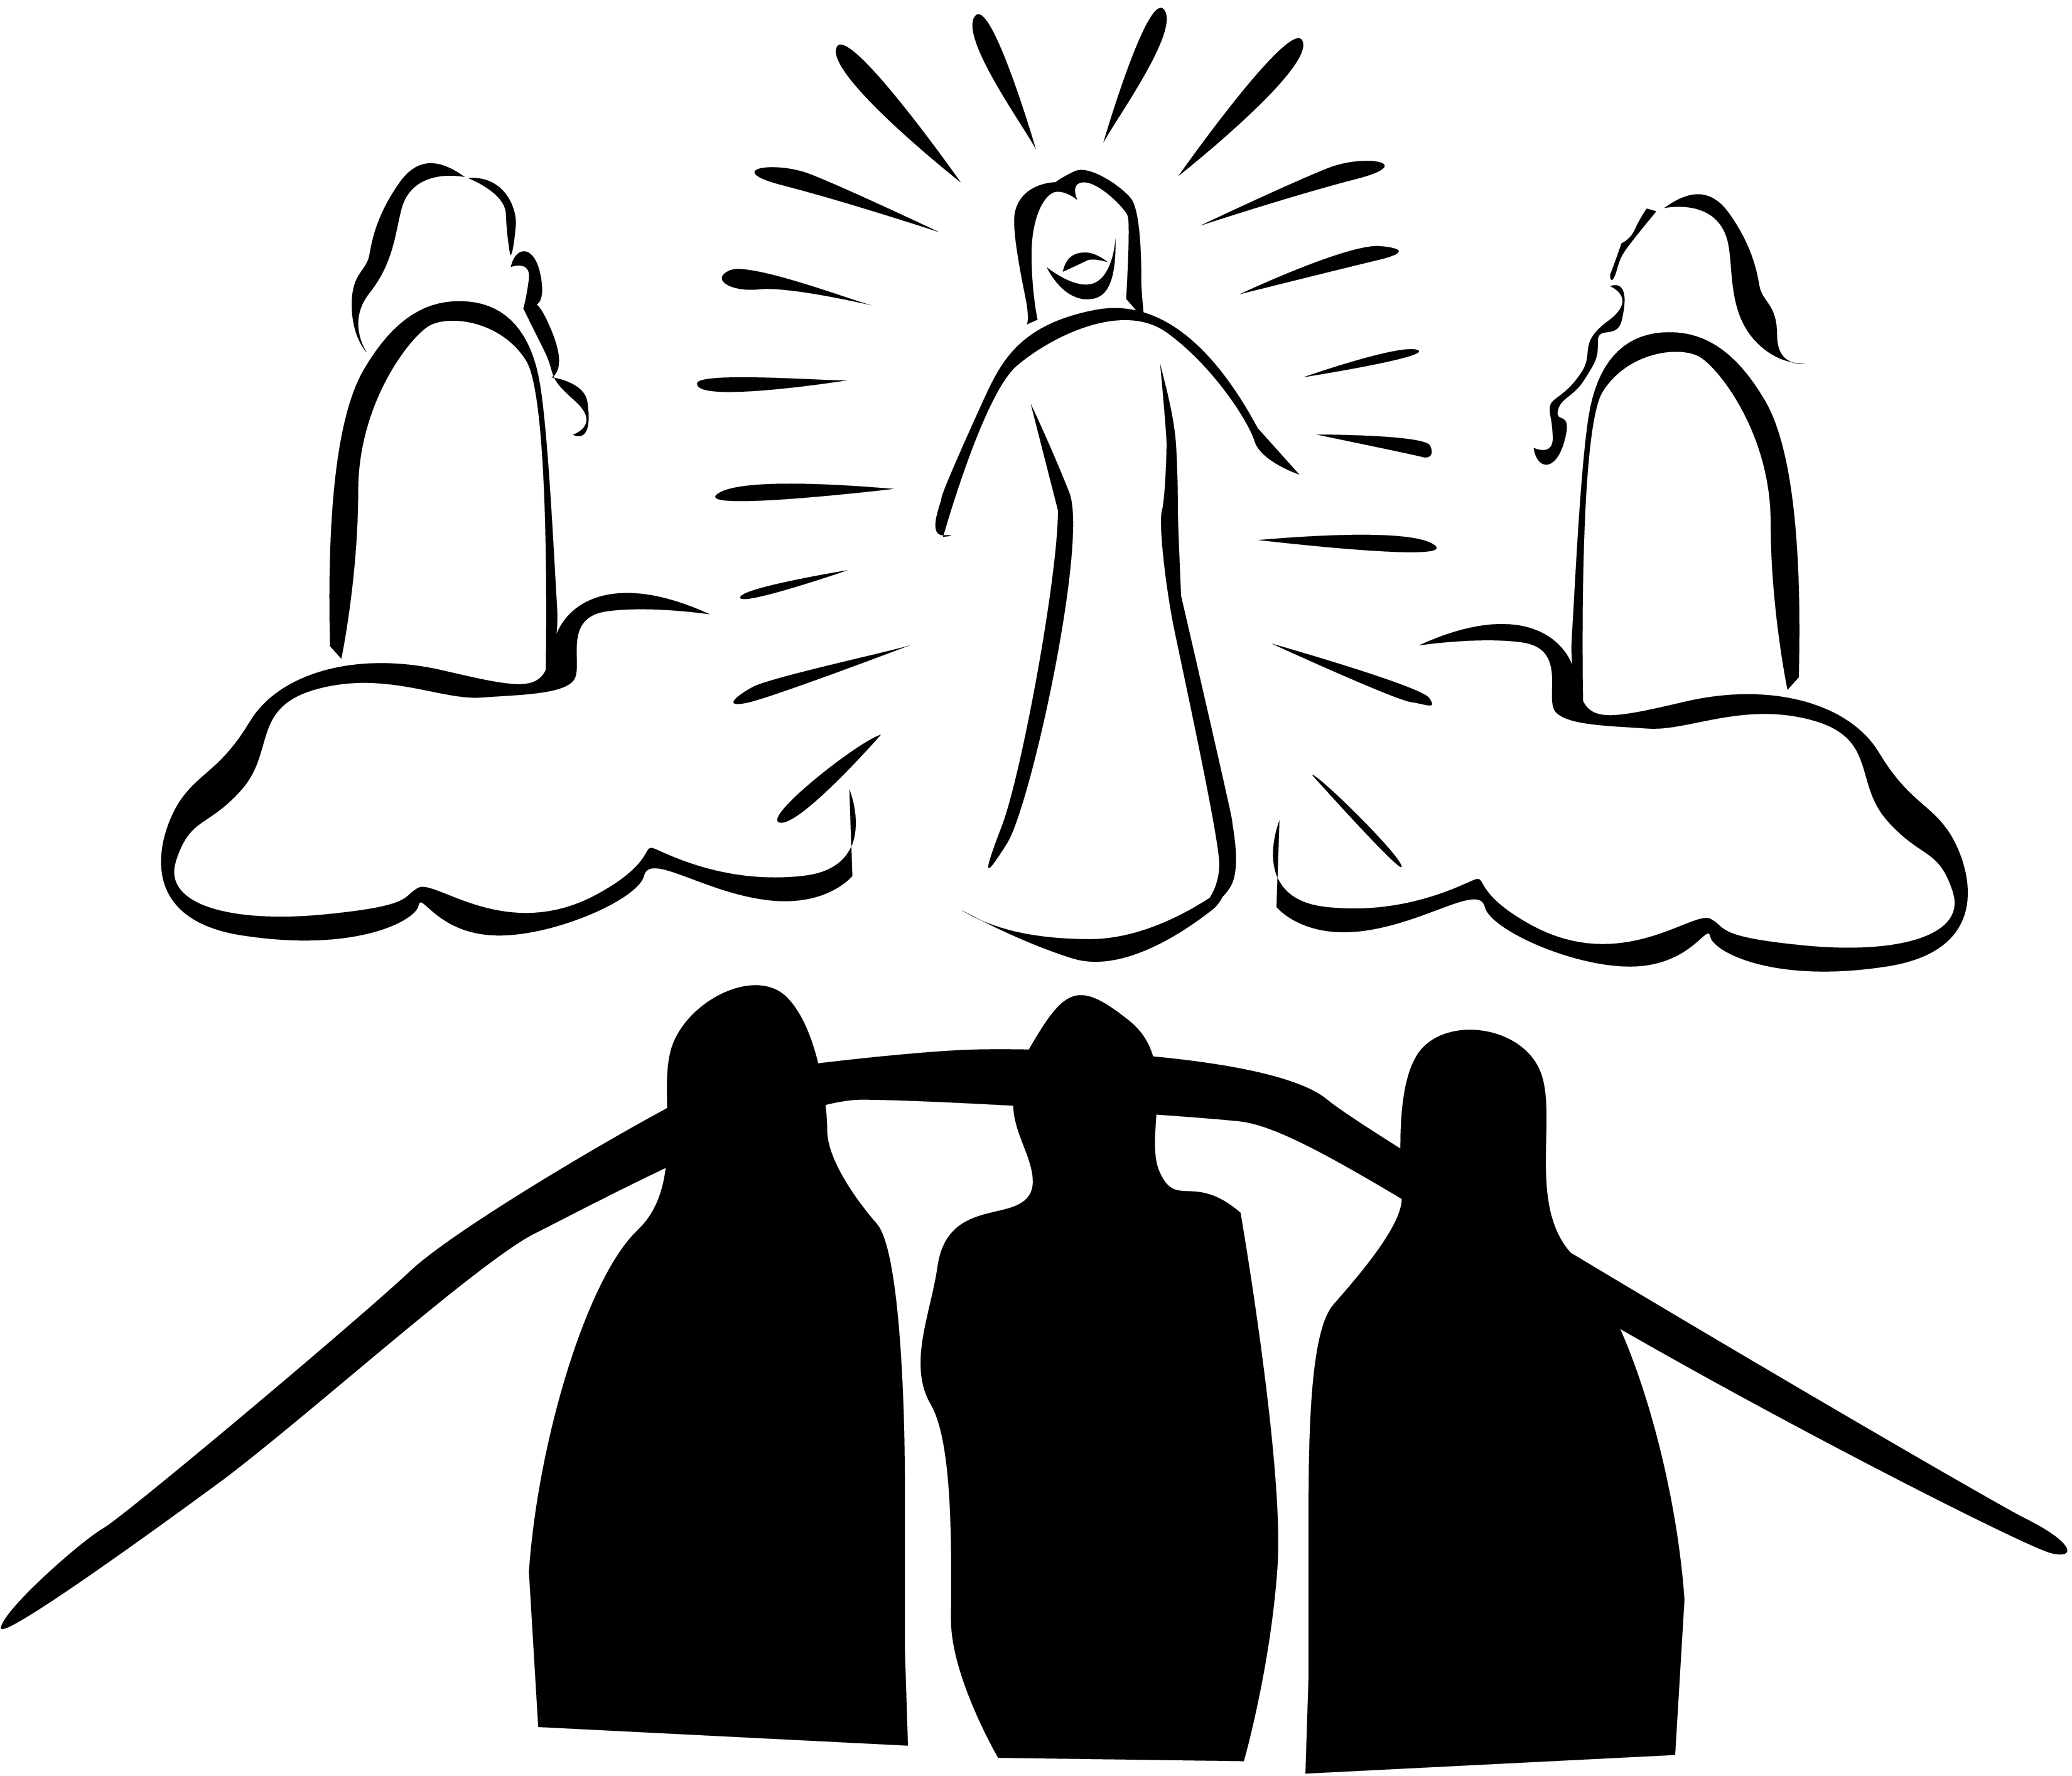 Free Ash Wednesday Clipart, Download Free Clip Art, Free.